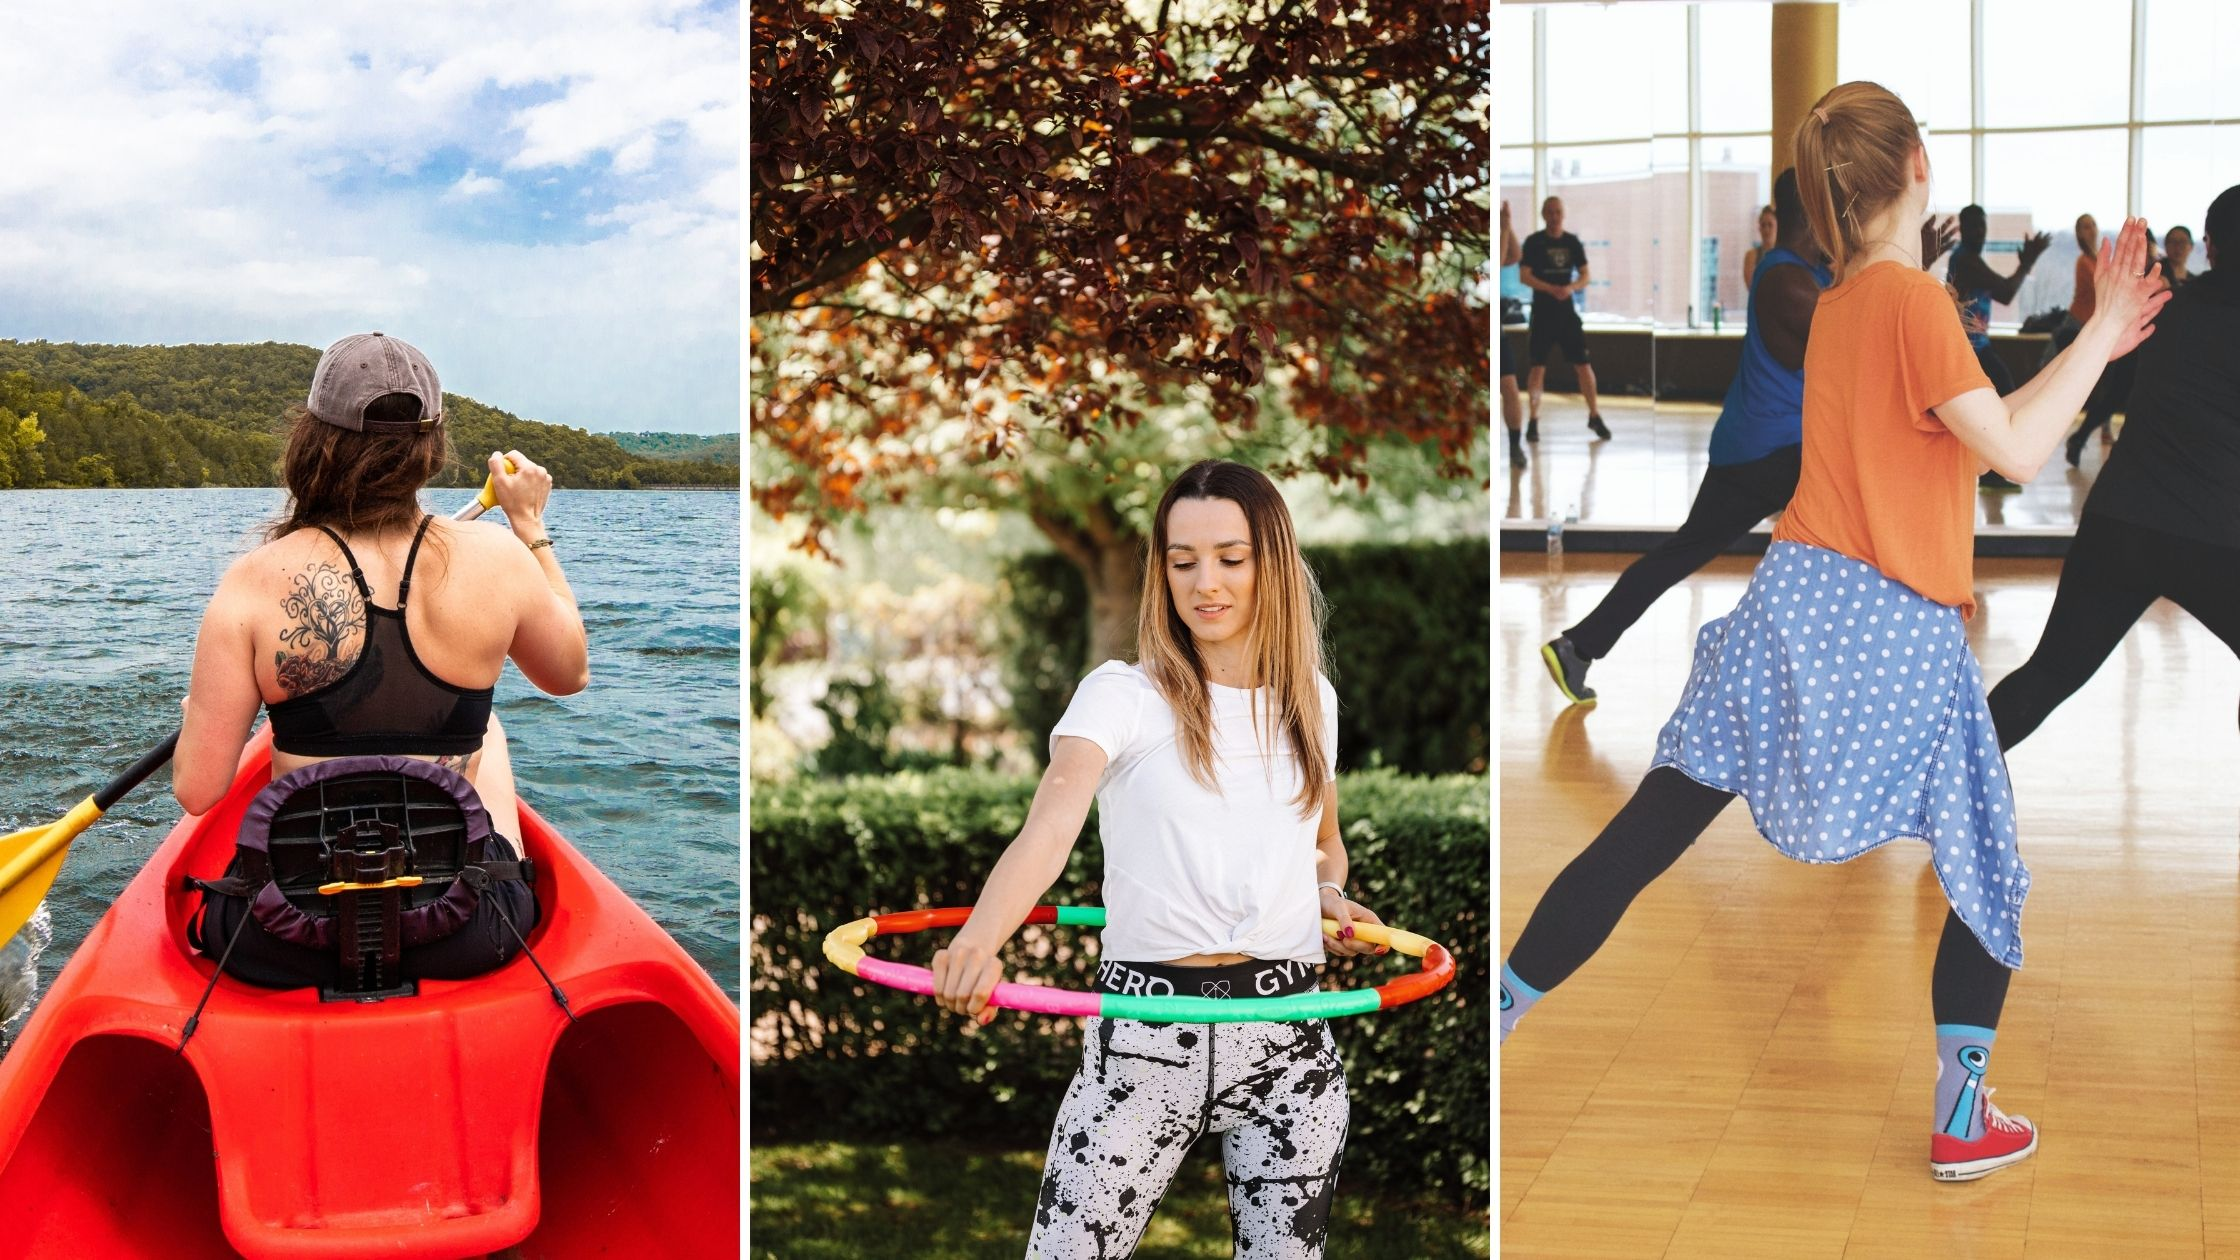 Kayaking, hula hooping and dancing